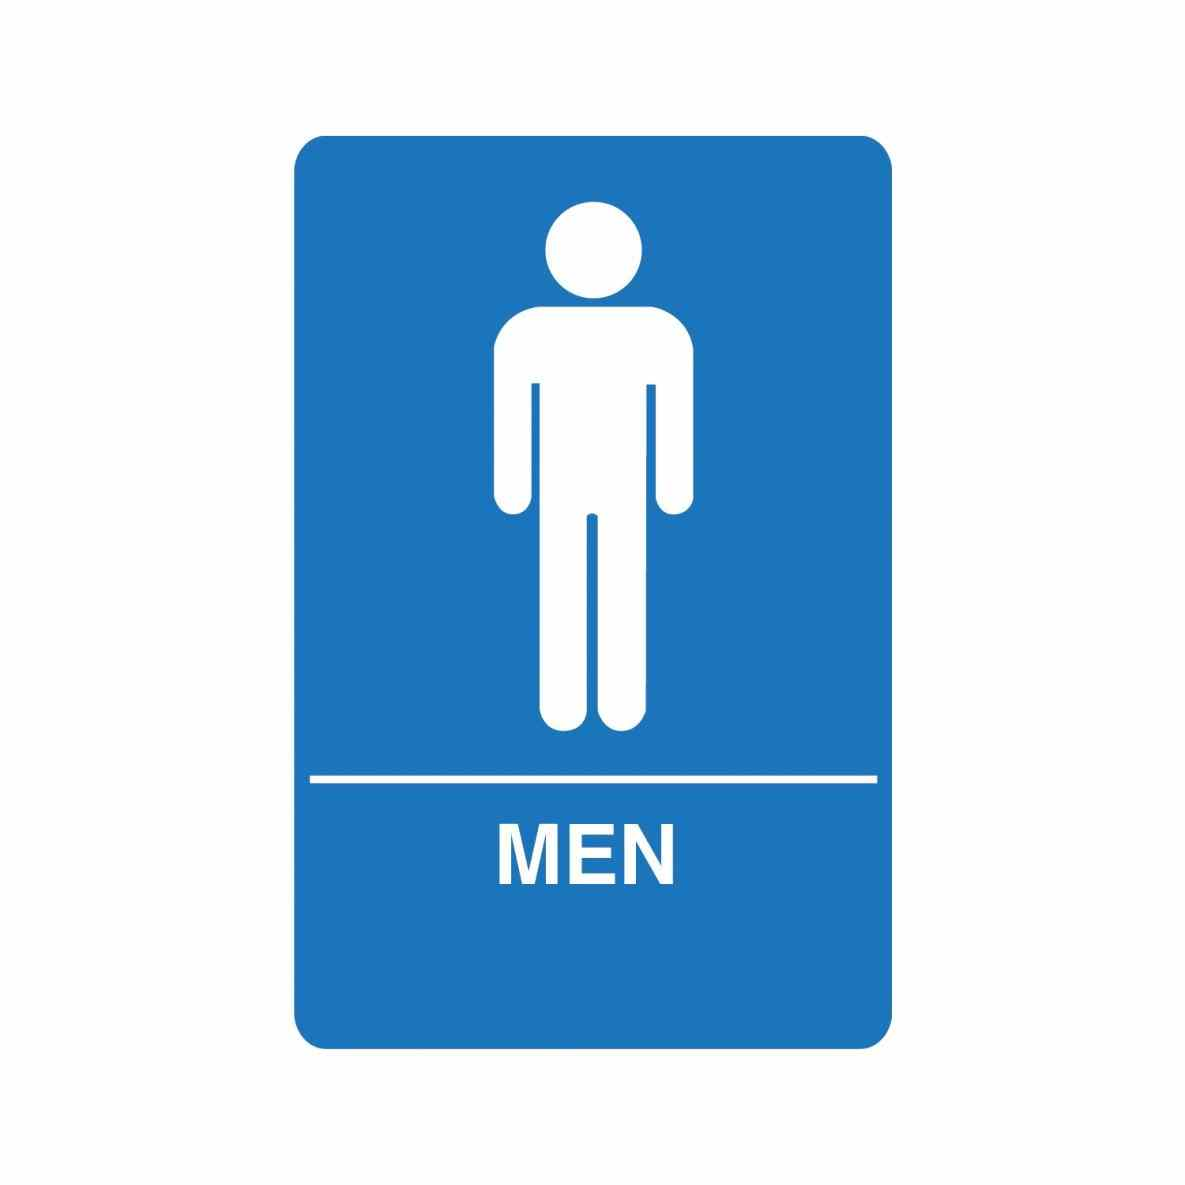 graphic relating to Printable Restroom Signs identify Totally free Printable Restroom Symptoms Clipart Absolutely free obtain suitable